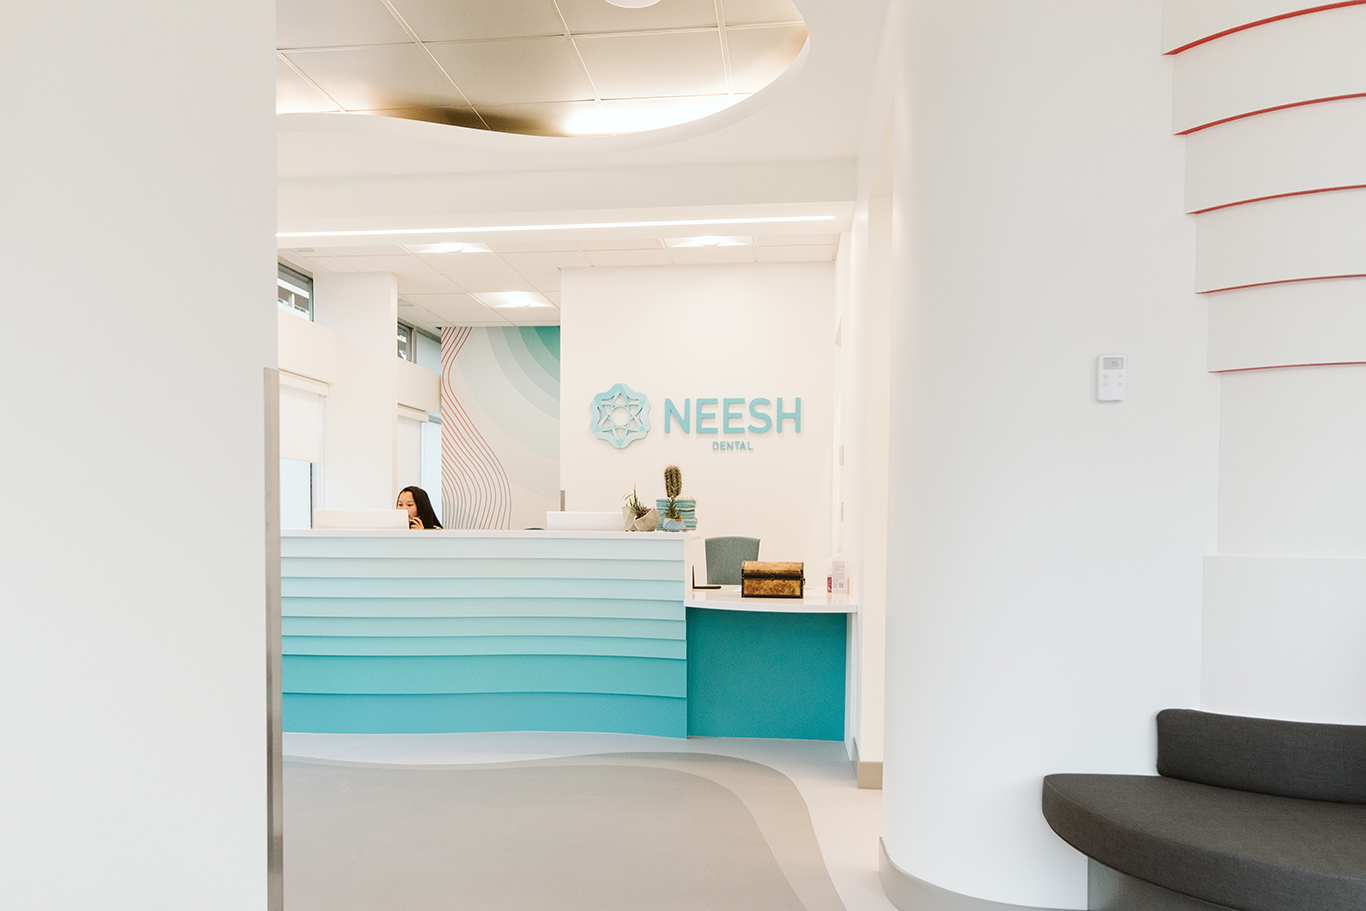 The reception desk of Neesh Dental in Saskatoon Saskatchewan